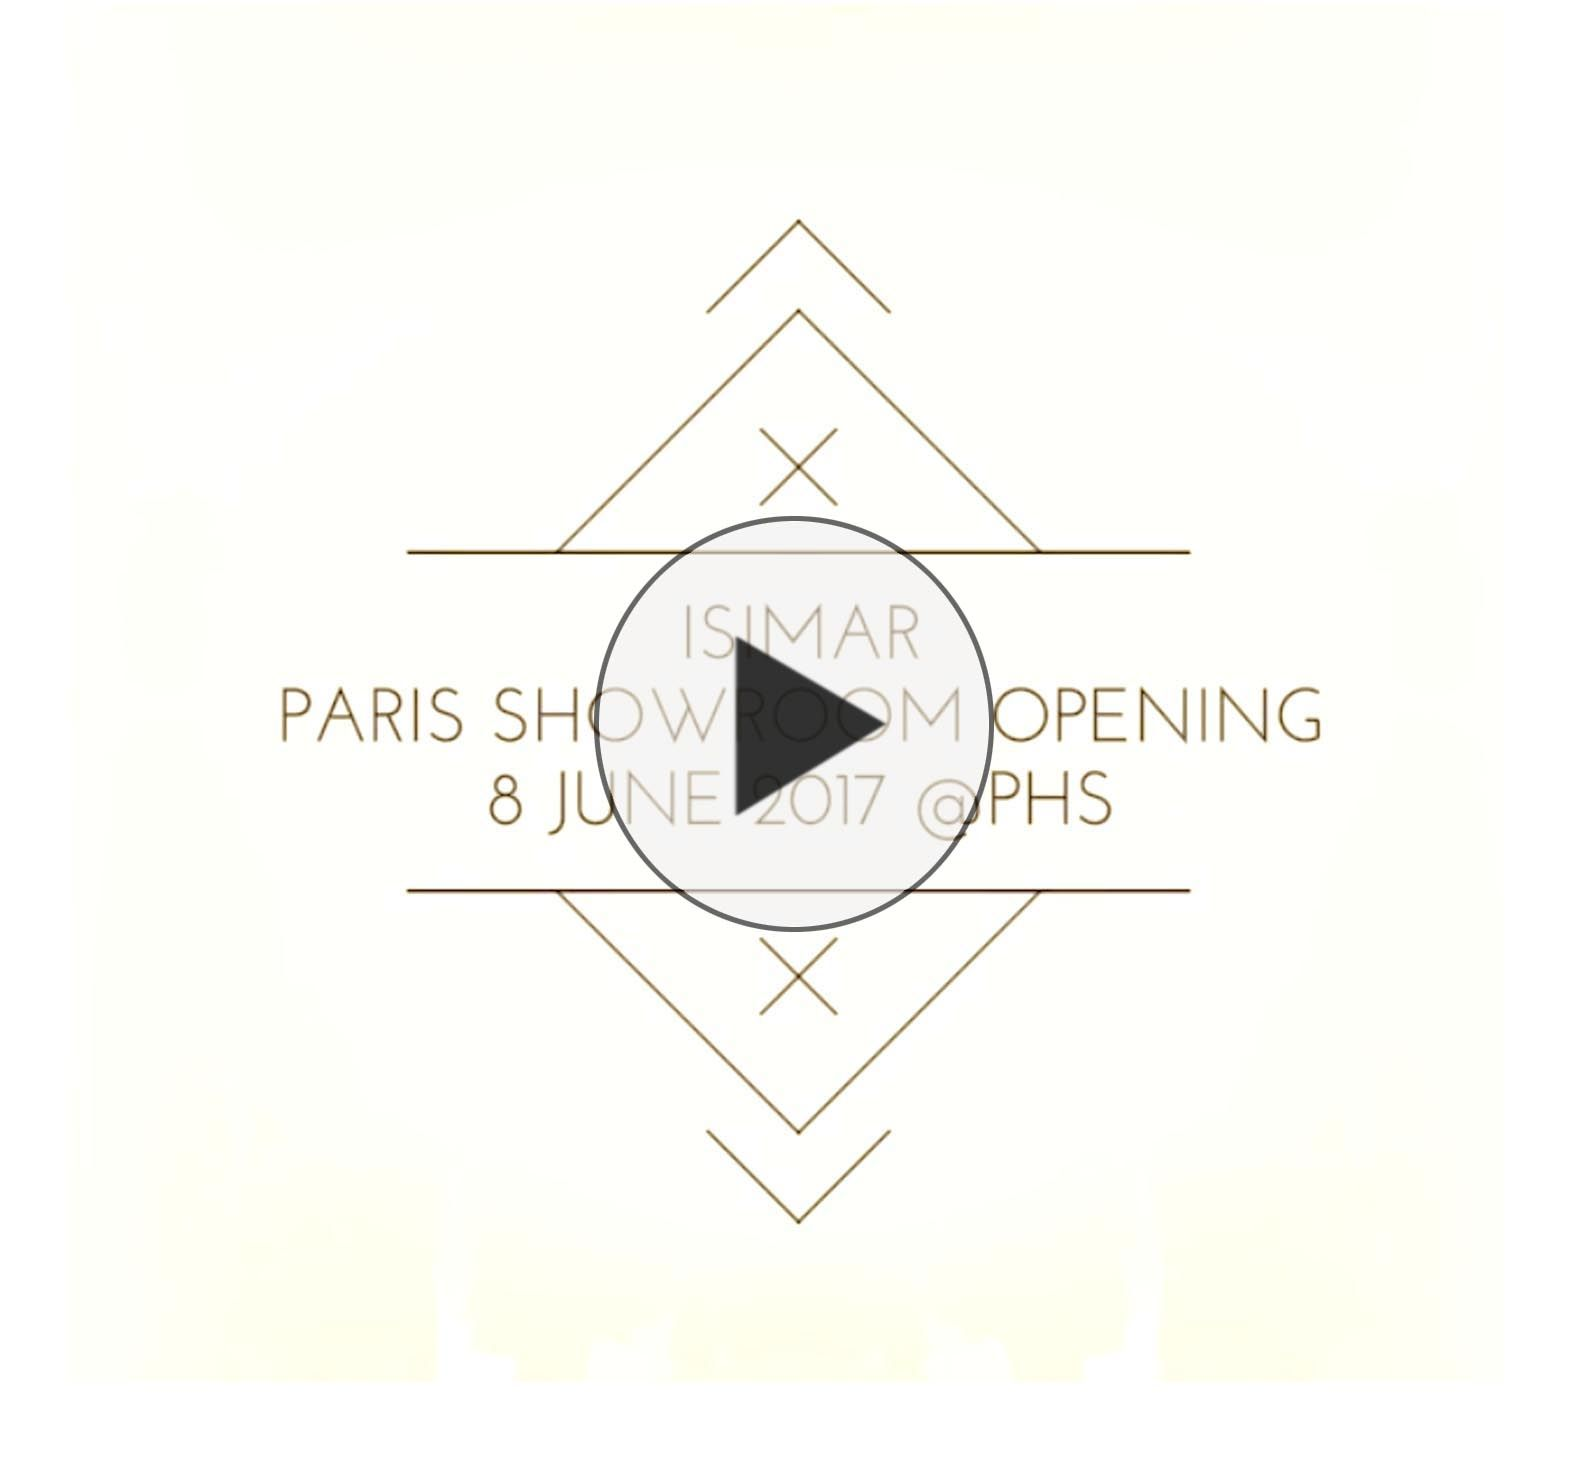 iSimar_Paris showroom opening | Showroom, Wire chair and Modern